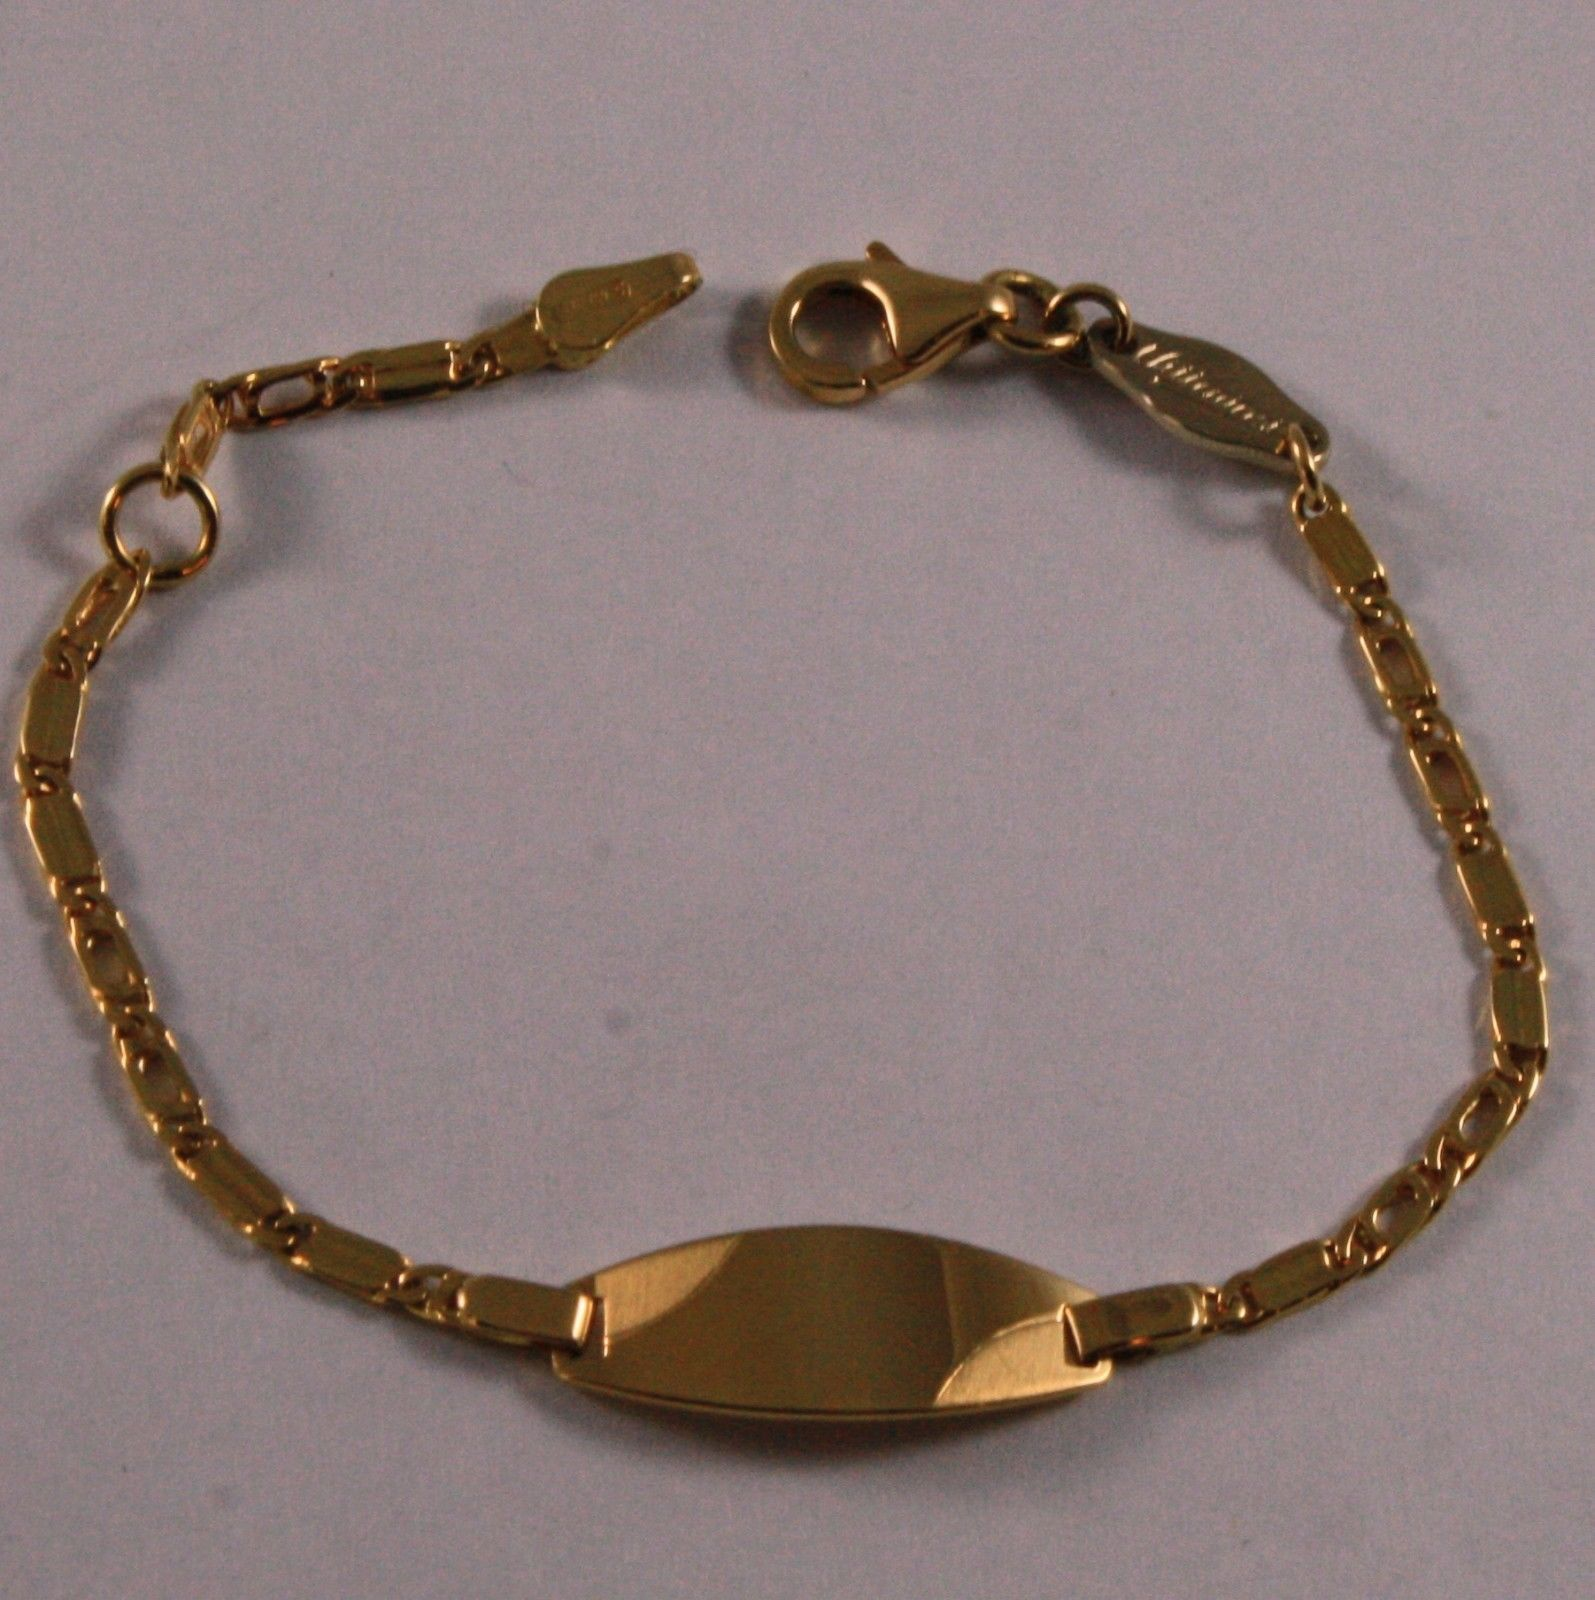 SOLID 18K YELLOW GOLD BRACELET, 5.7 INCHES, ENGRAVING OVAL PLATE, FOR CHILDREN.